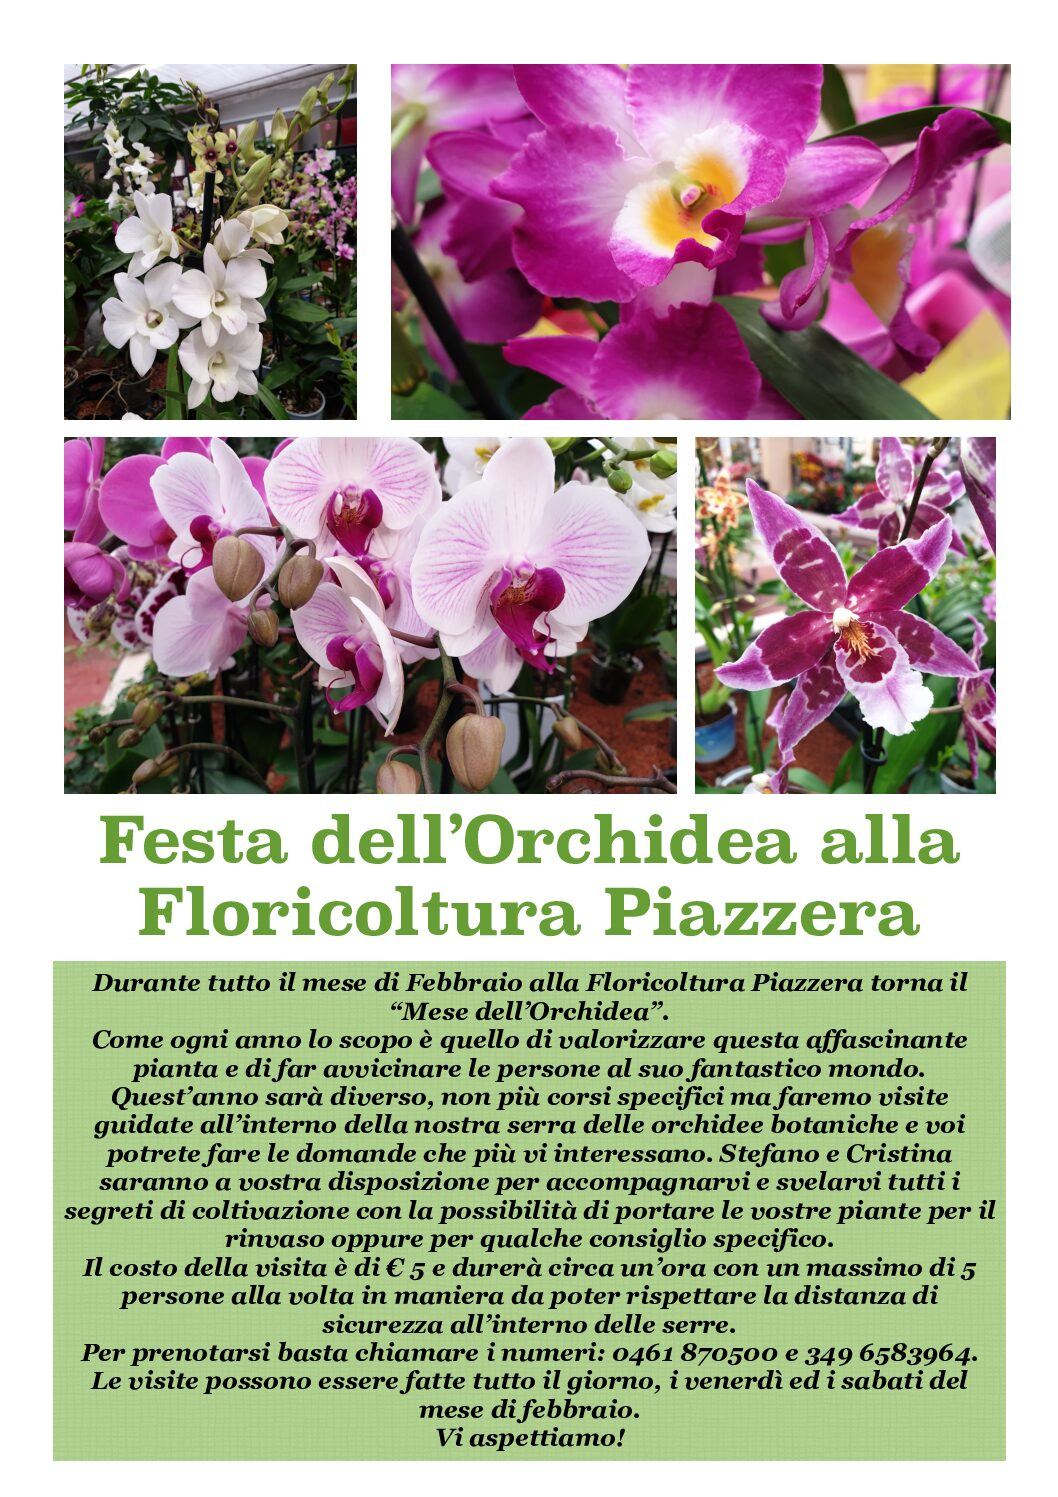 Festa dell'Orchidea 2021